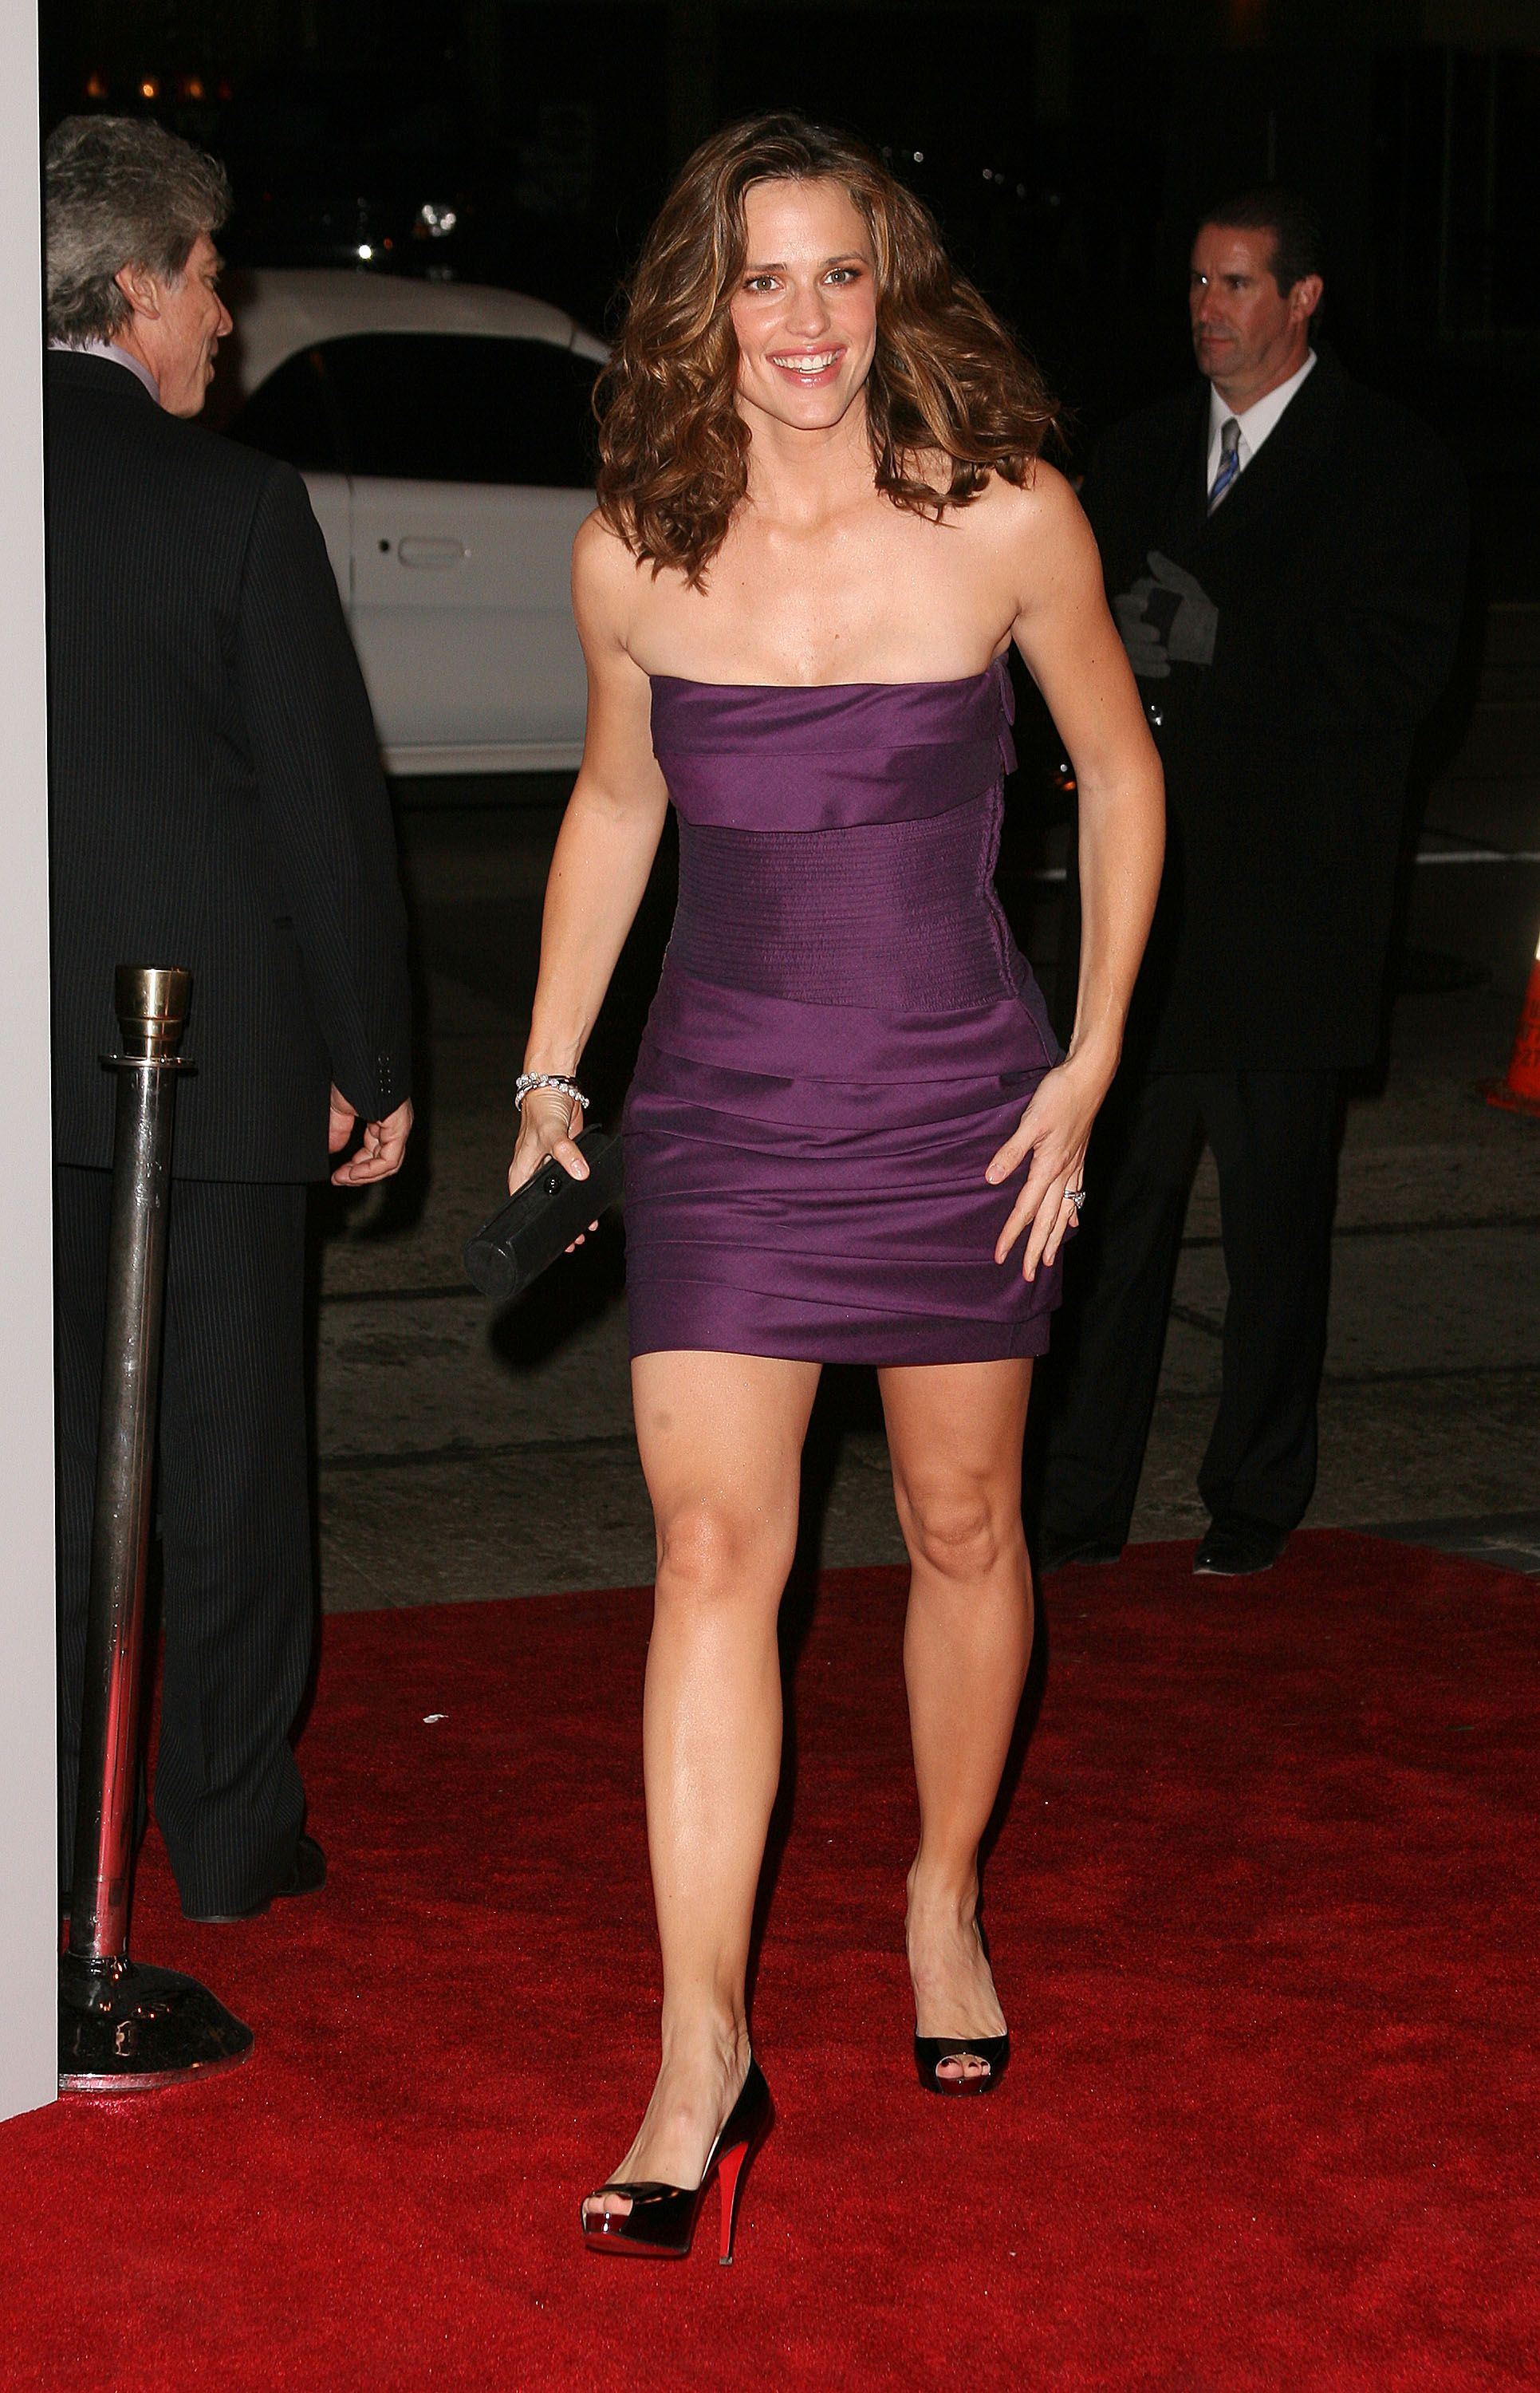 November 29, 2006 In Versace at the GQ Man of the Year Awards in Los Angeles, California.